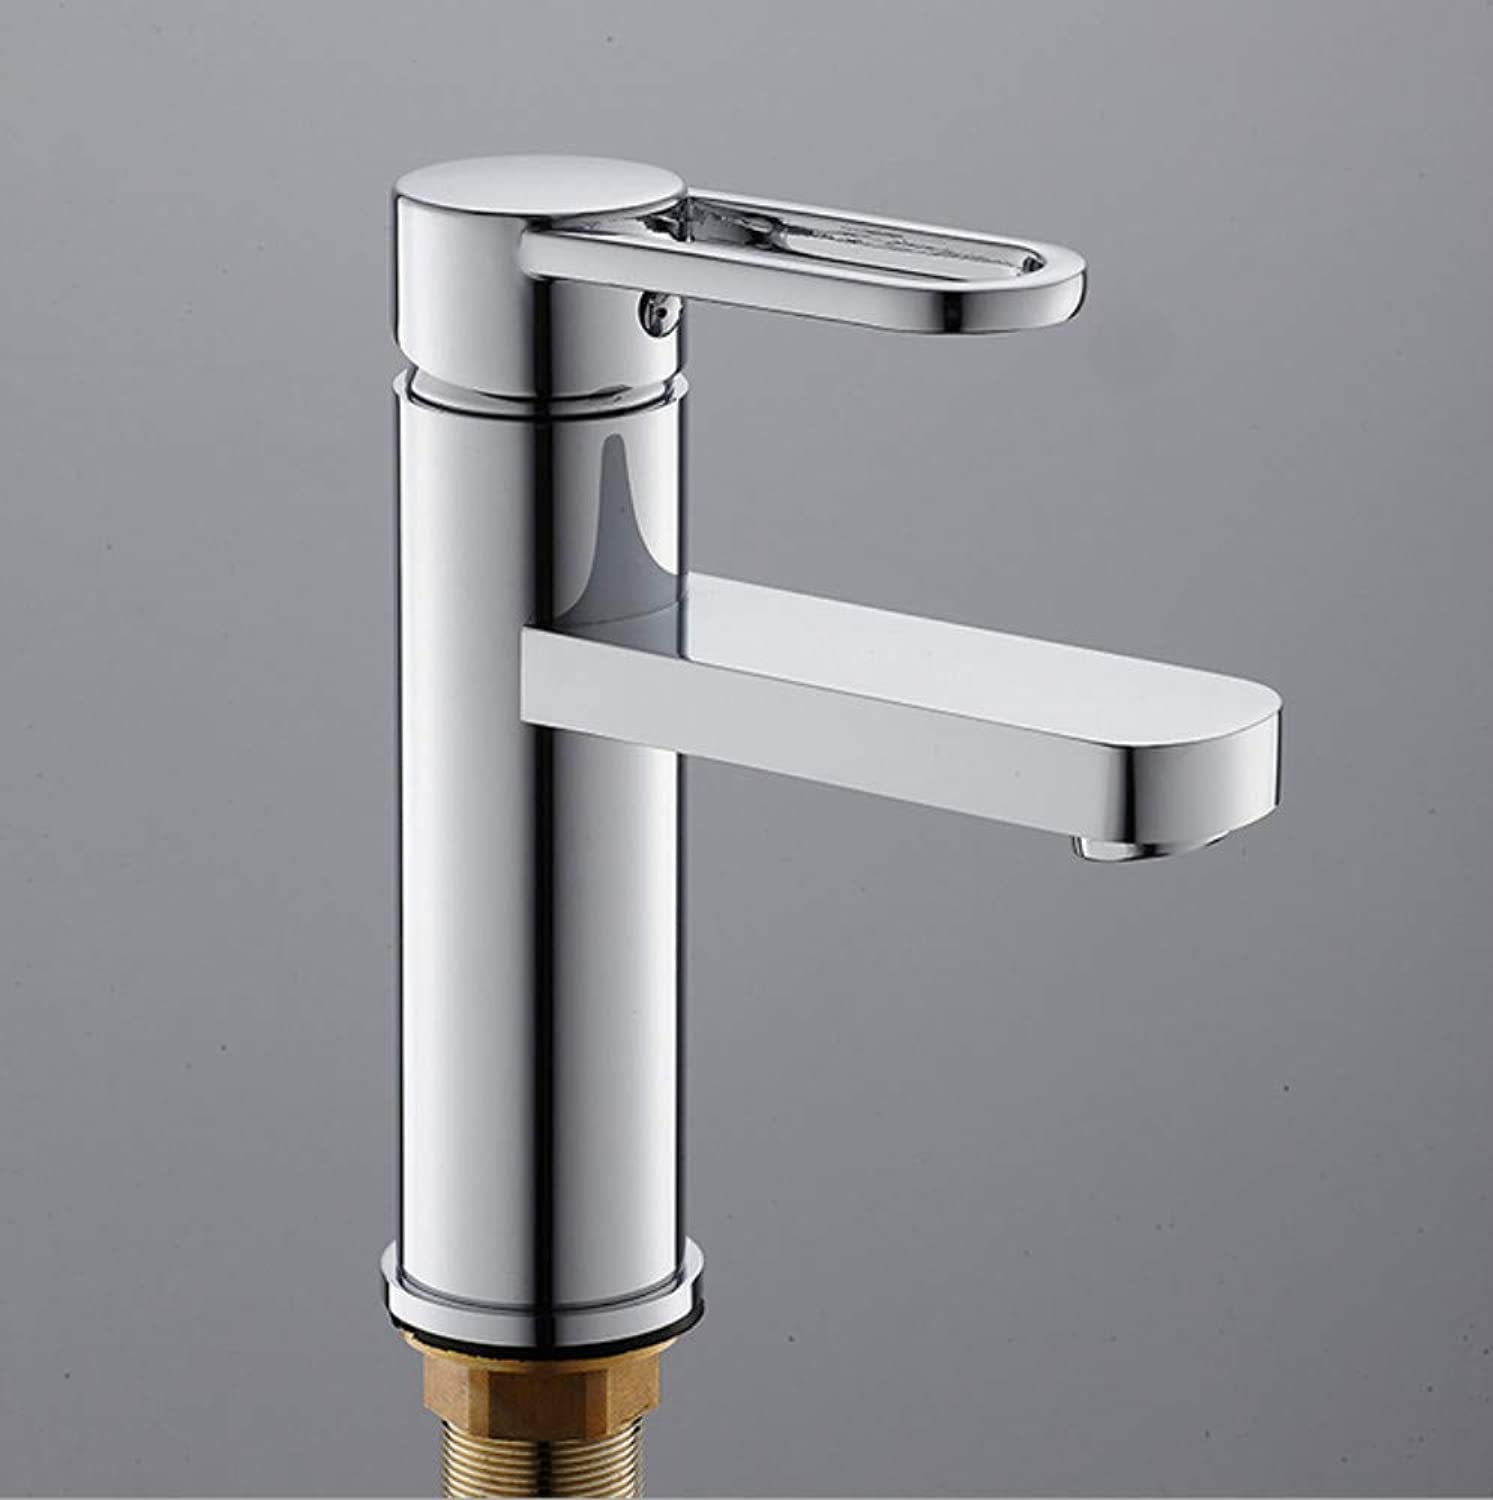 Xiujie Faucet European Style Simple Bathroom Faucet Lifting Type Hot and Cold Water Mixing Faucet Basin Faucet